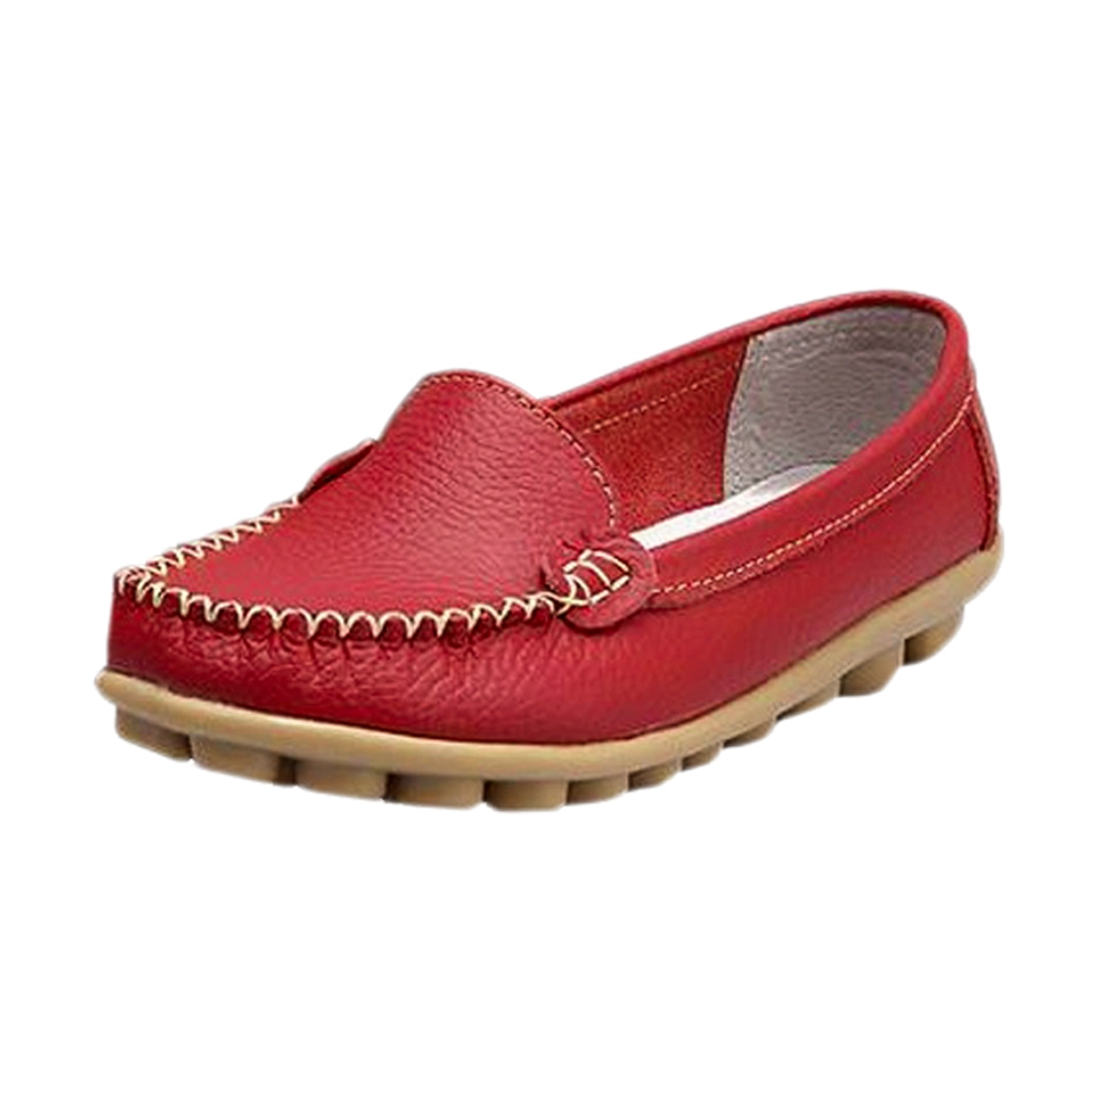 Girl comfortable flat shoes Peas shoes spring new women's breathable leather Casual shoess Red US5 2017 new spring imported leather men s shoes white eather shoes breathable sneaker fashion men casual shoes